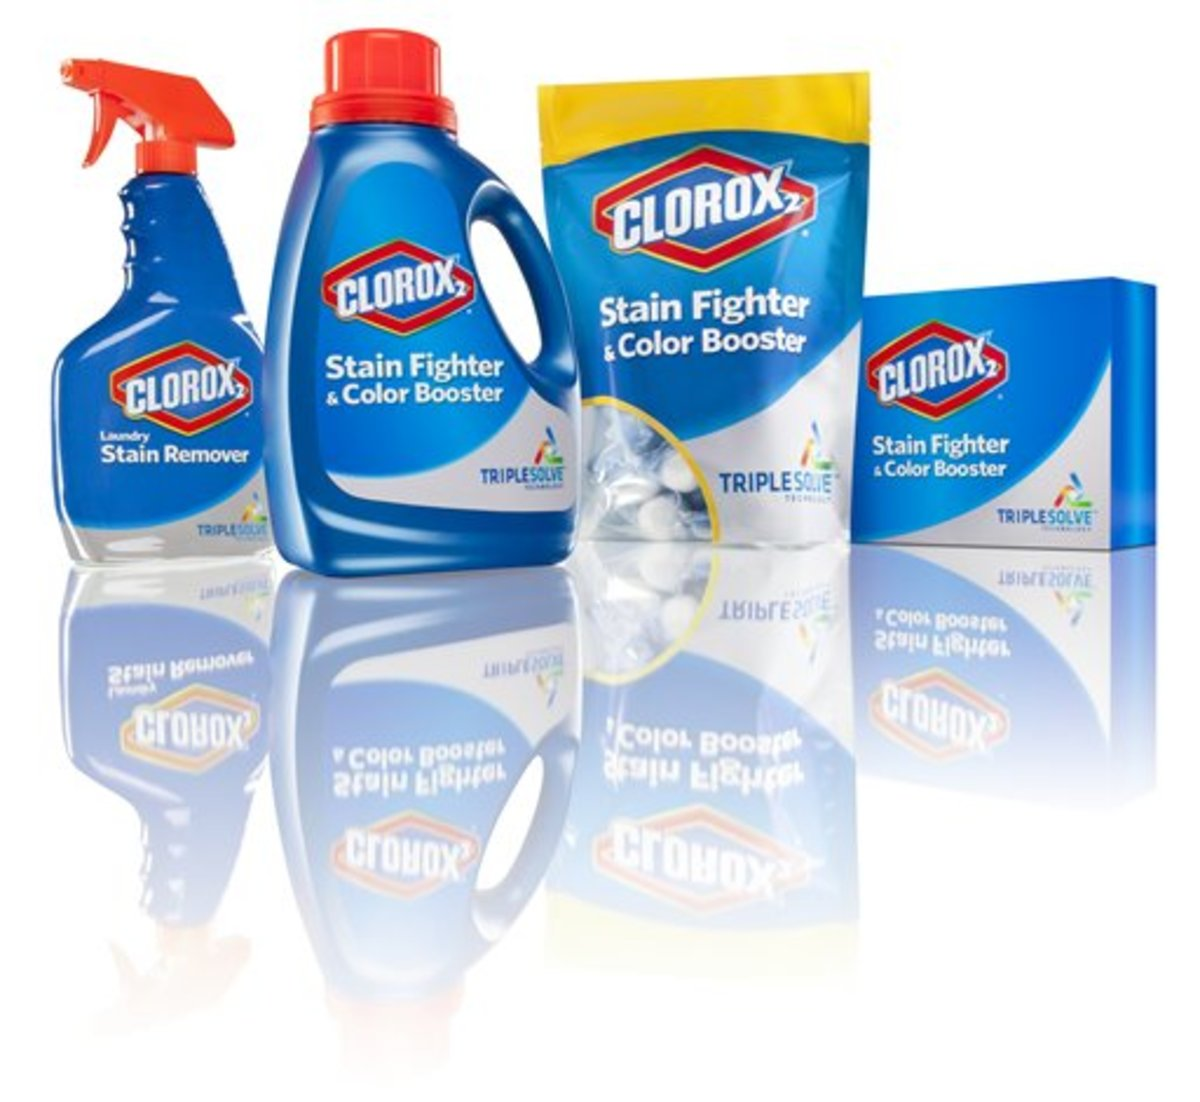 Clorox stain fighter multiple bottles